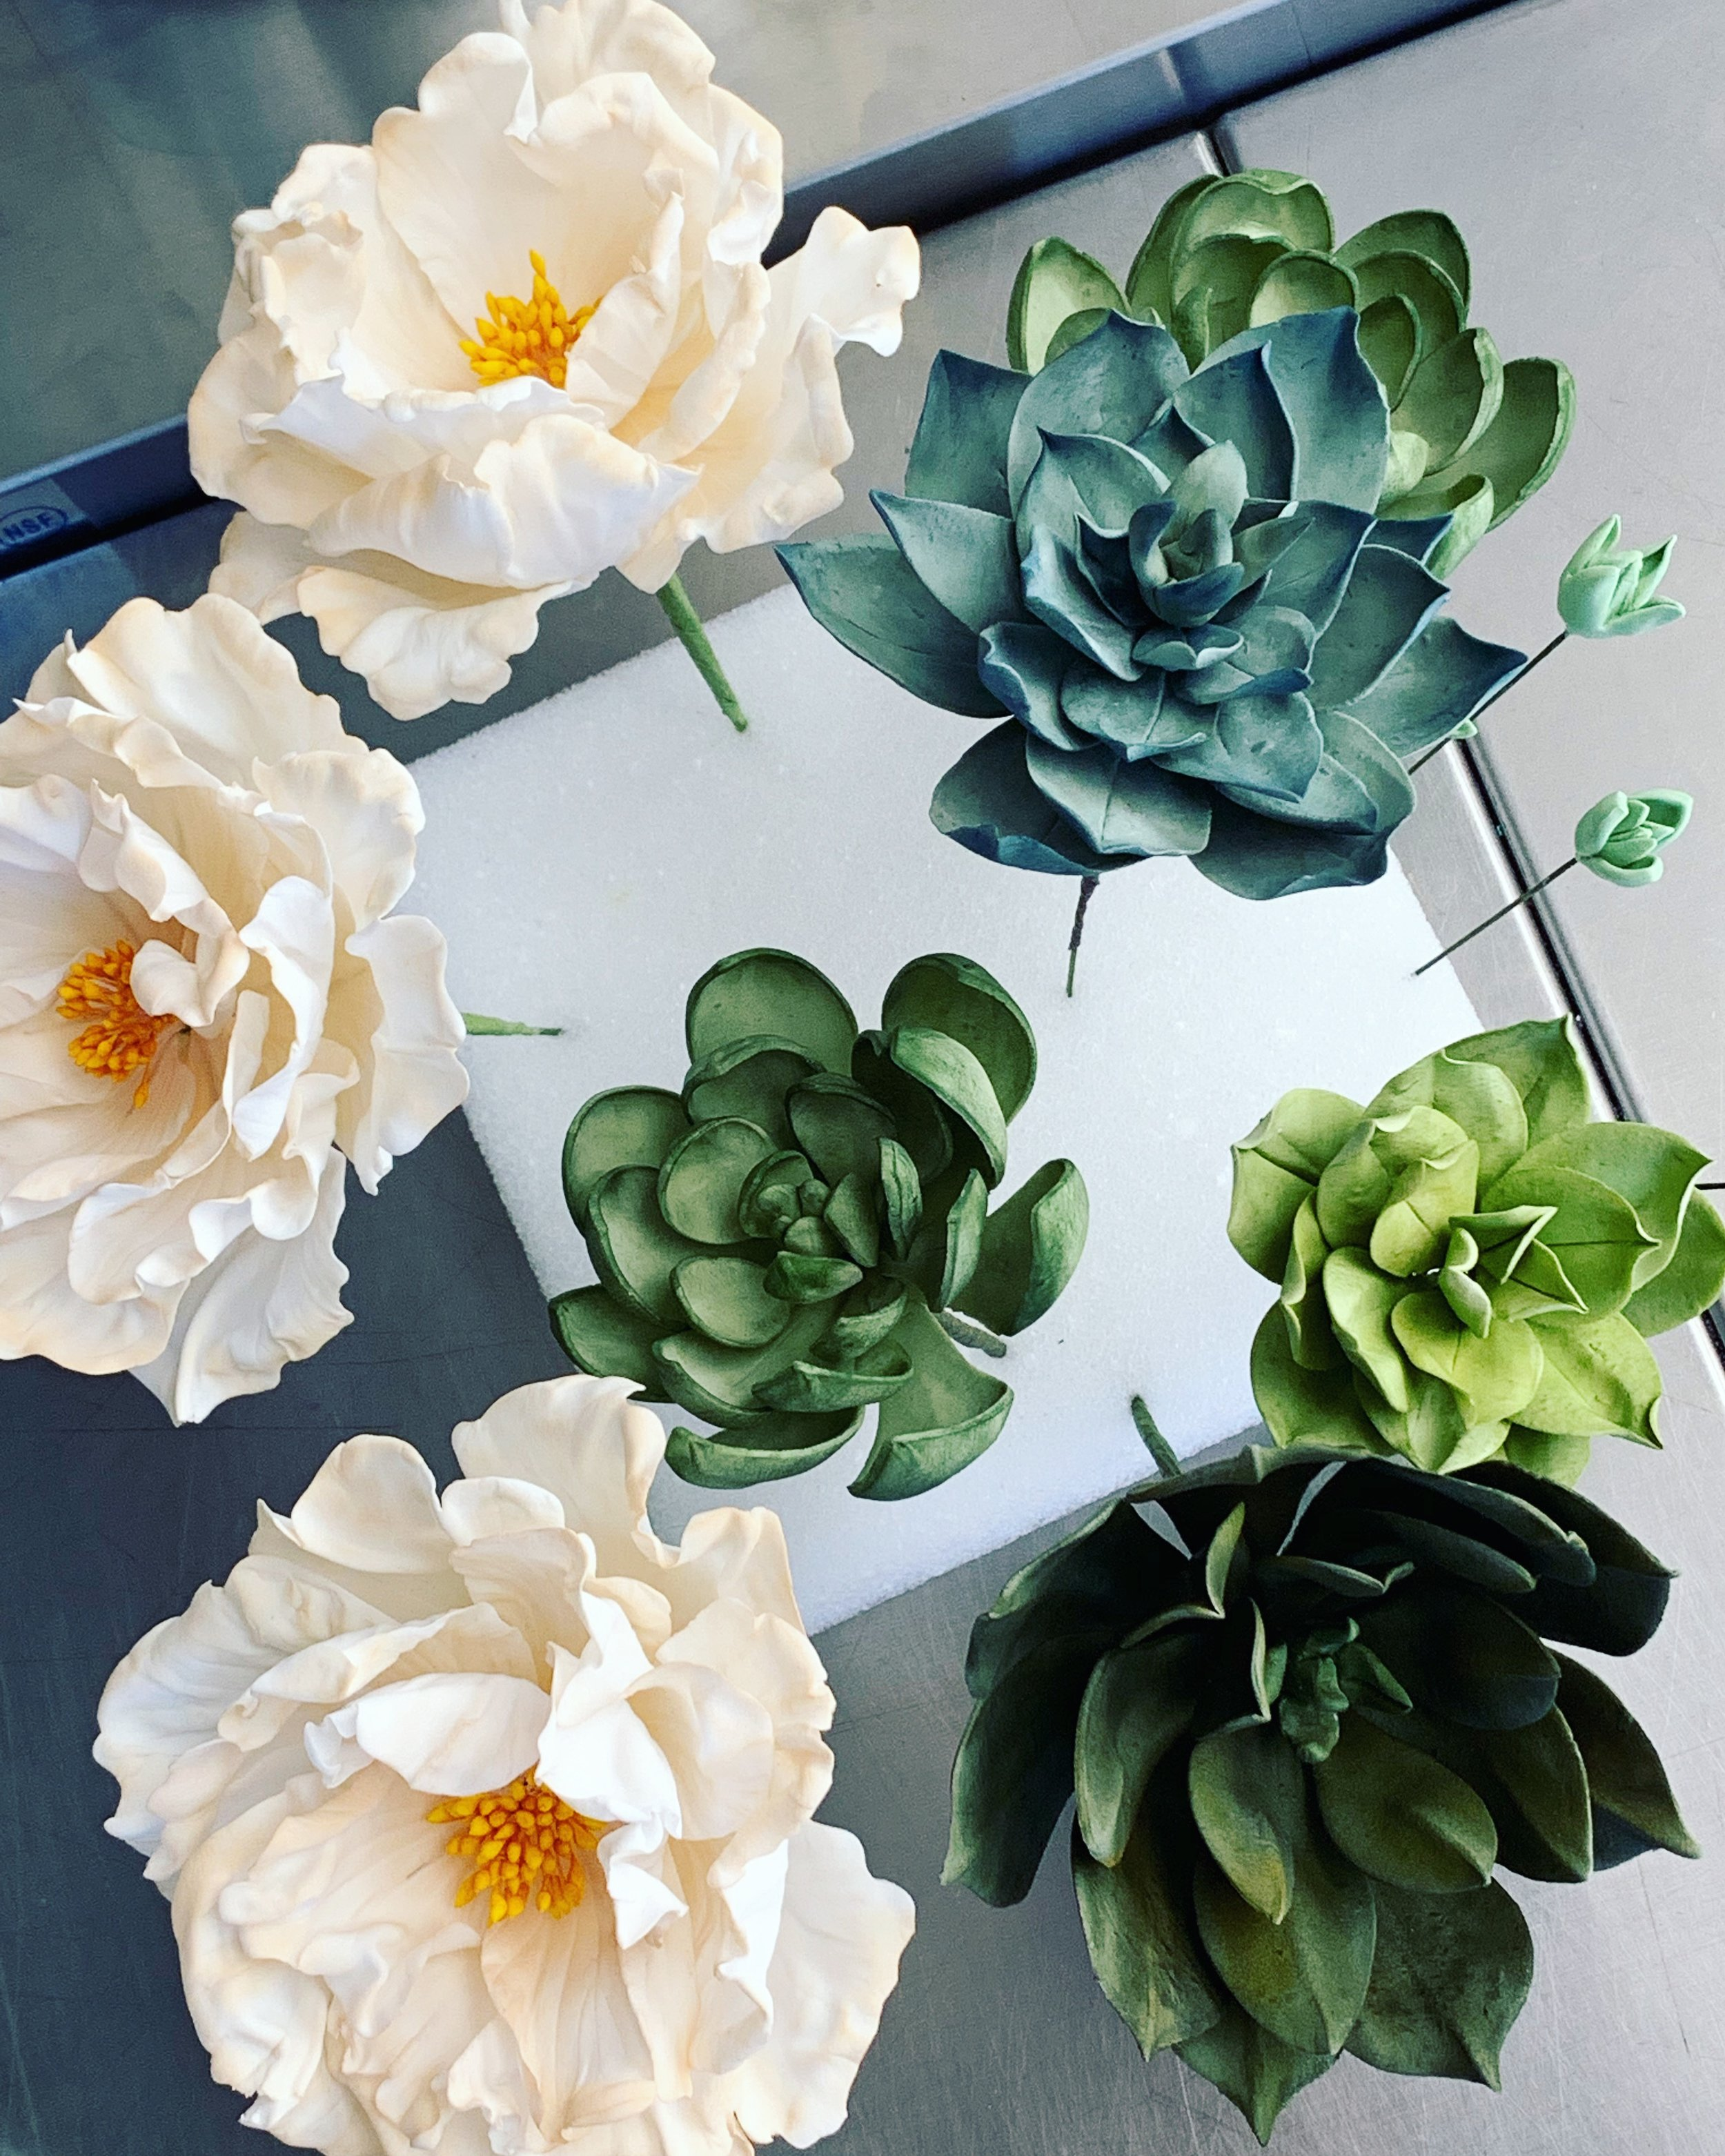 Sugar succulents and climbing roses. Image copyright Carla Schier.